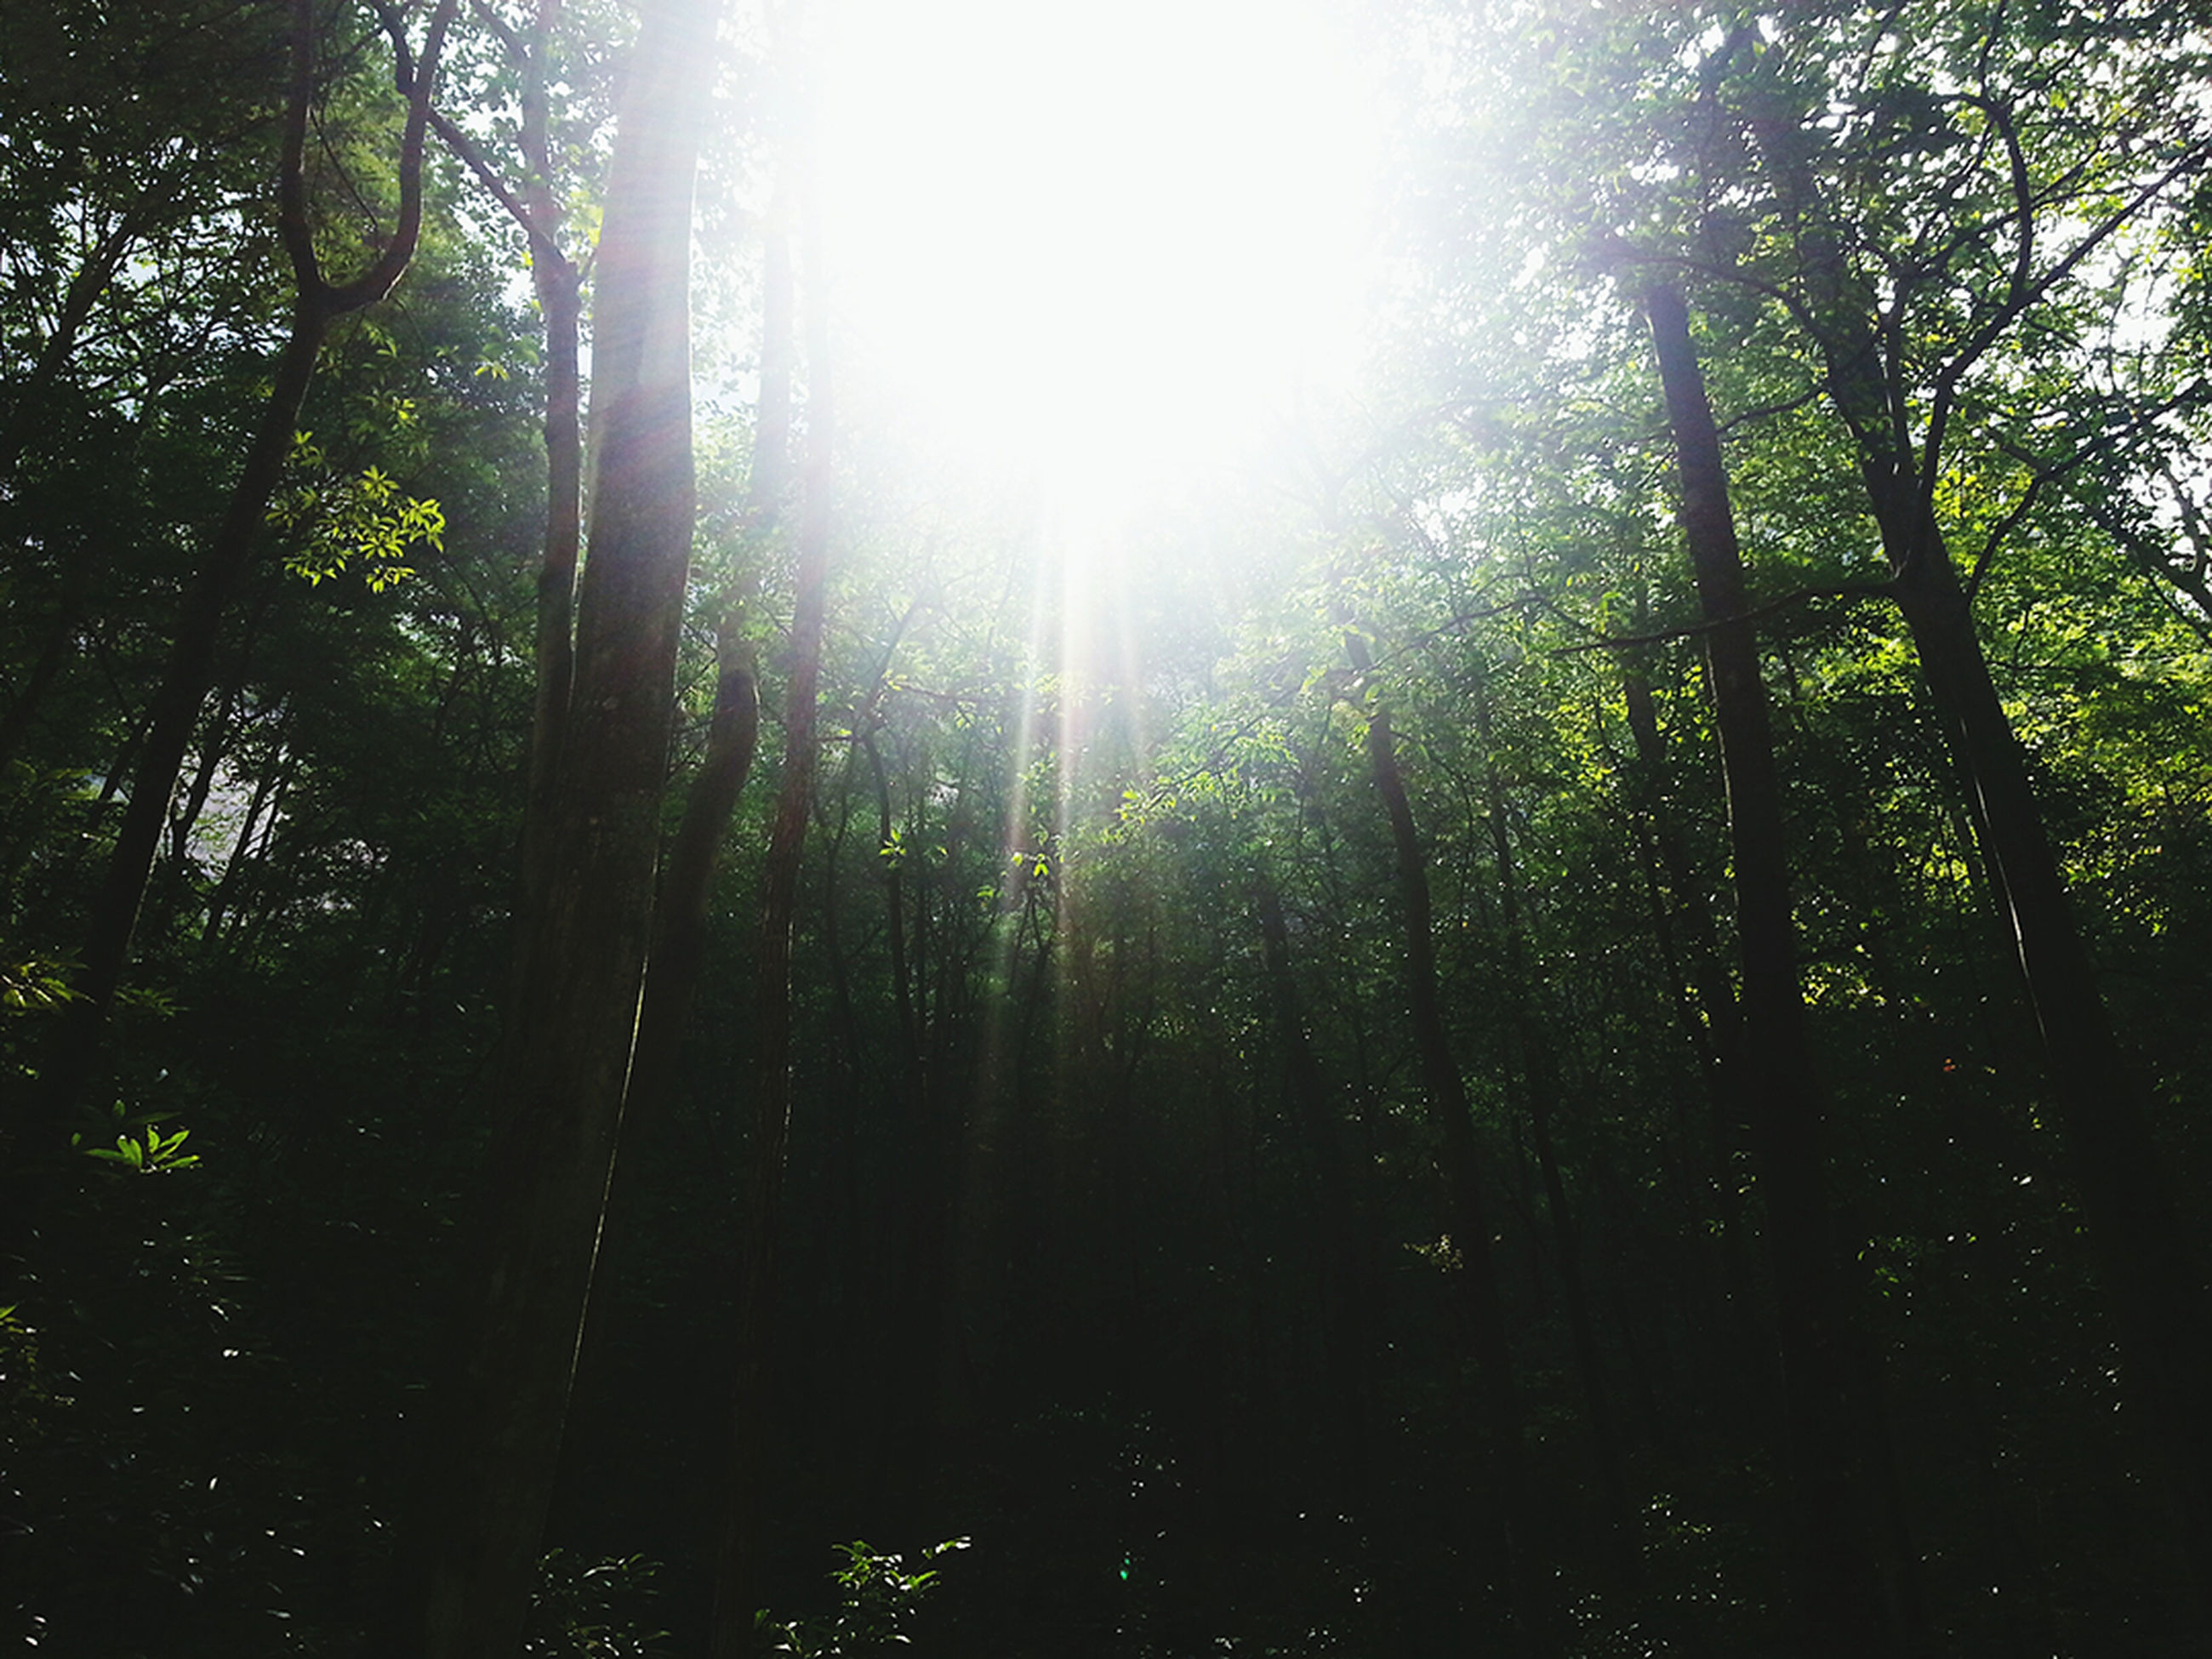 forest, low angle view, tranquility, growth, tree, nature, sun, scenics, tranquil scene, green, tree trunk, beauty in nature, woodland, green color, lush foliage, sunbeam, plant, non-urban scene, back lit, outdoors, day, lens flare, branch, solitude, woods, sky, wilderness, solar flare, majestic, rainforest, greenery, full frame